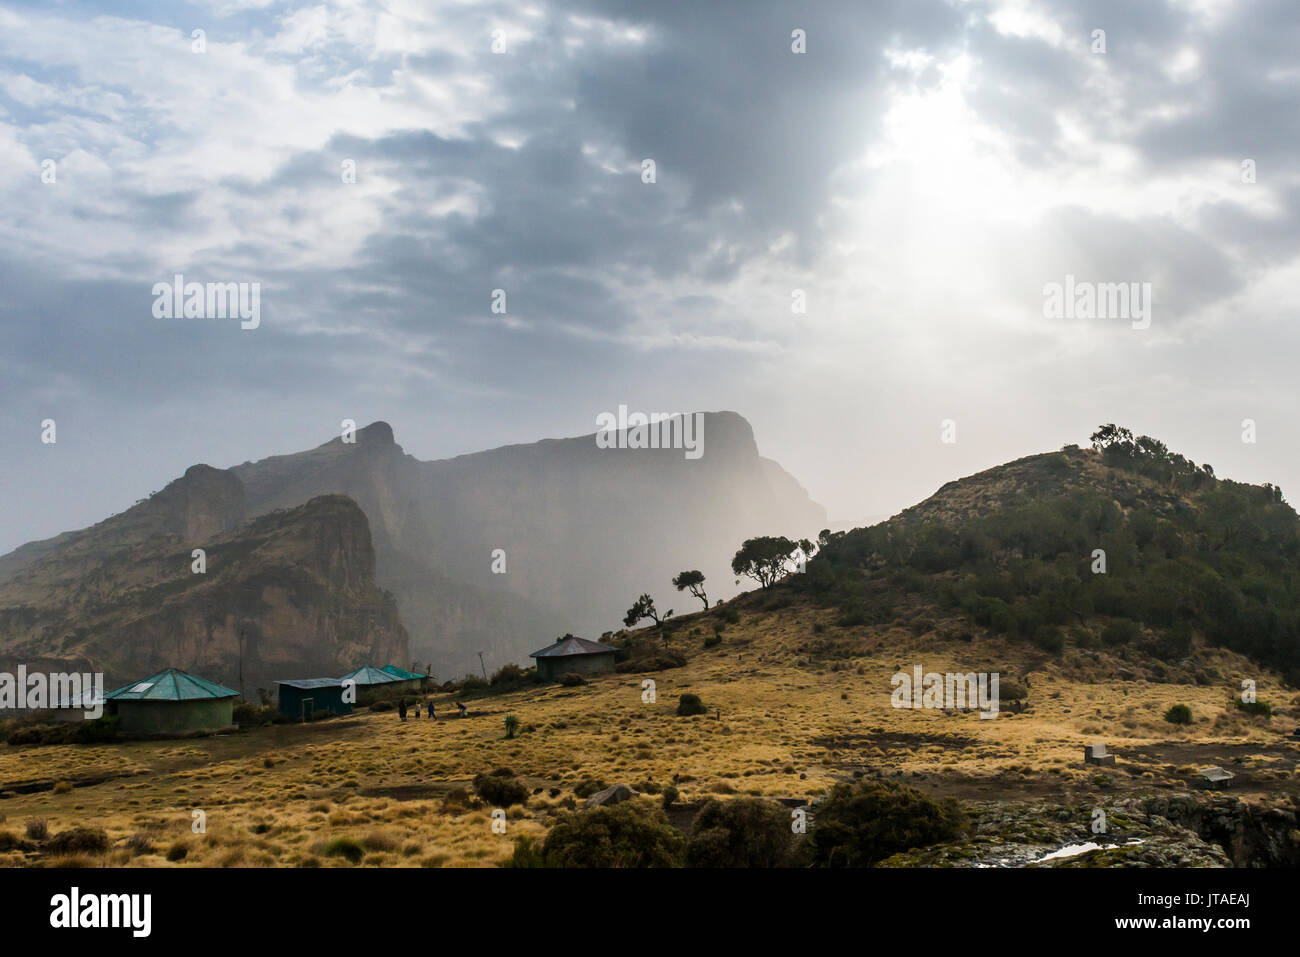 Sun setting over the Simien Mountains National Park, UNESCO World Heritage Site, Debarq, Ethiopia, Africa - Stock Image